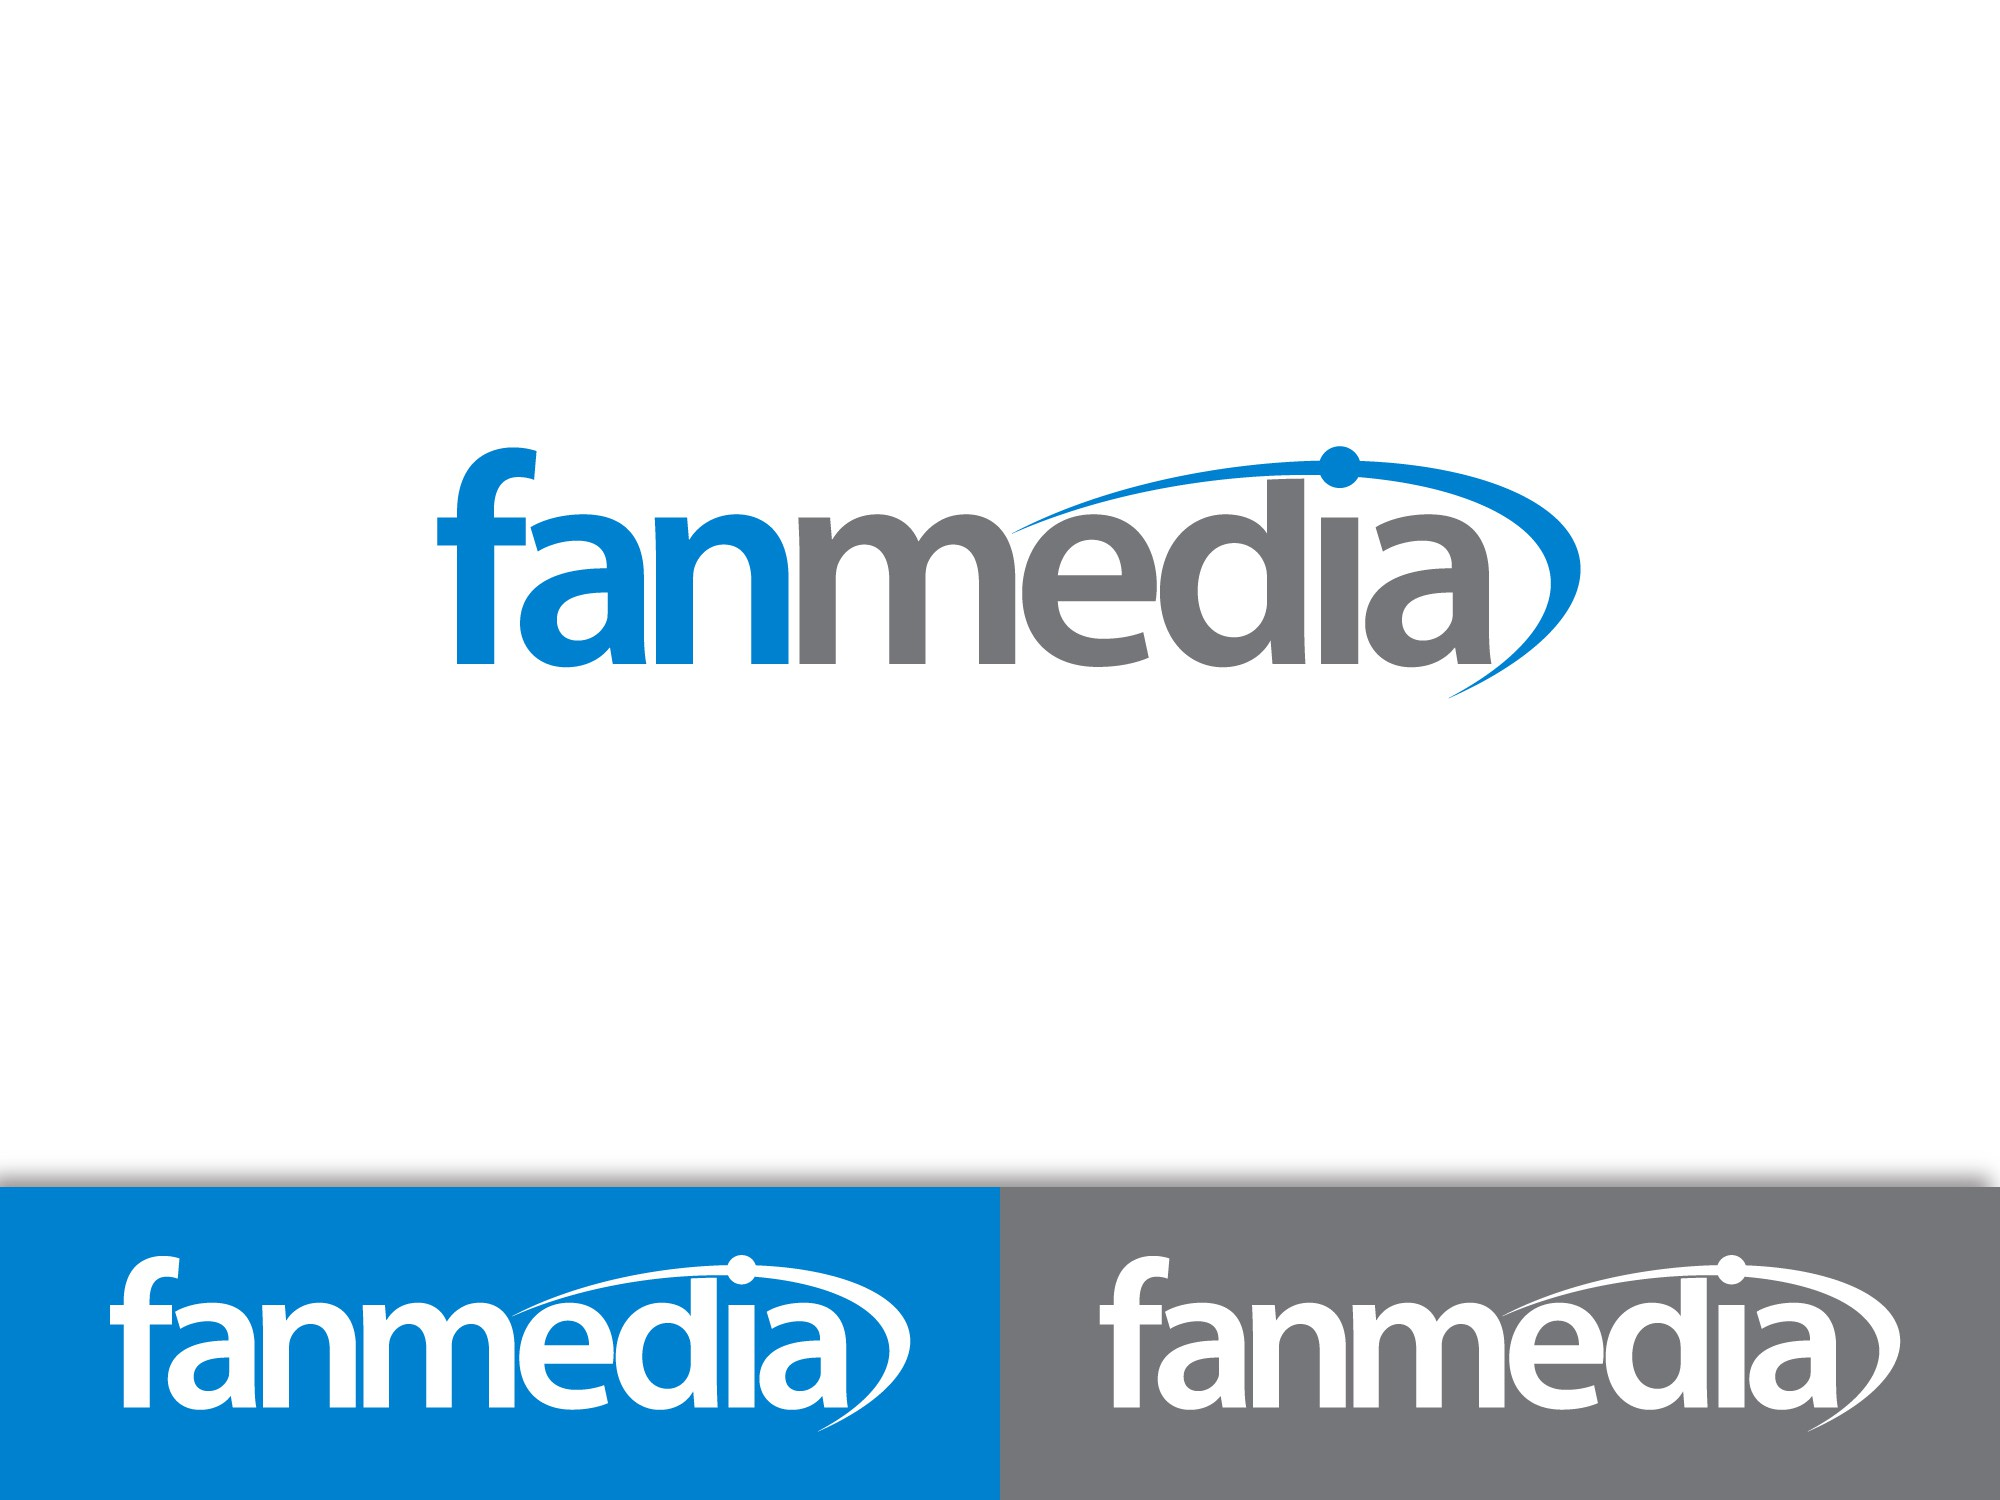 New logo wanted for fanmedia